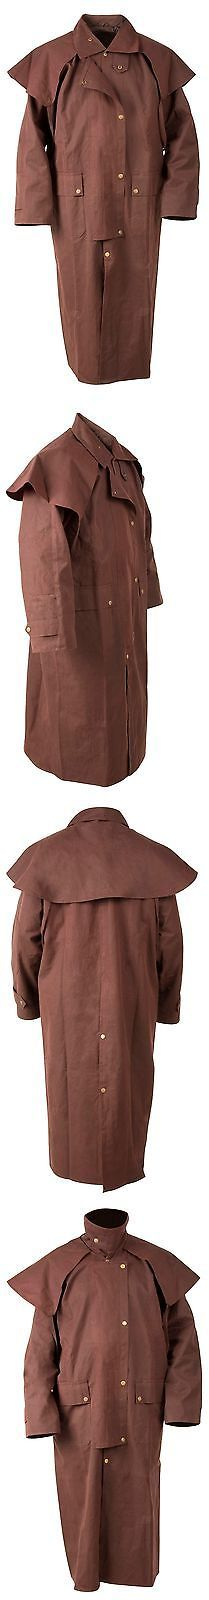 Other Rider Clothing 3167: 4Xl Western Cowboy Oilskin Duster Outback Mens Duster Coat Drover Jacket Brown -> BUY IT NOW ONLY: $85.49 on eBay!